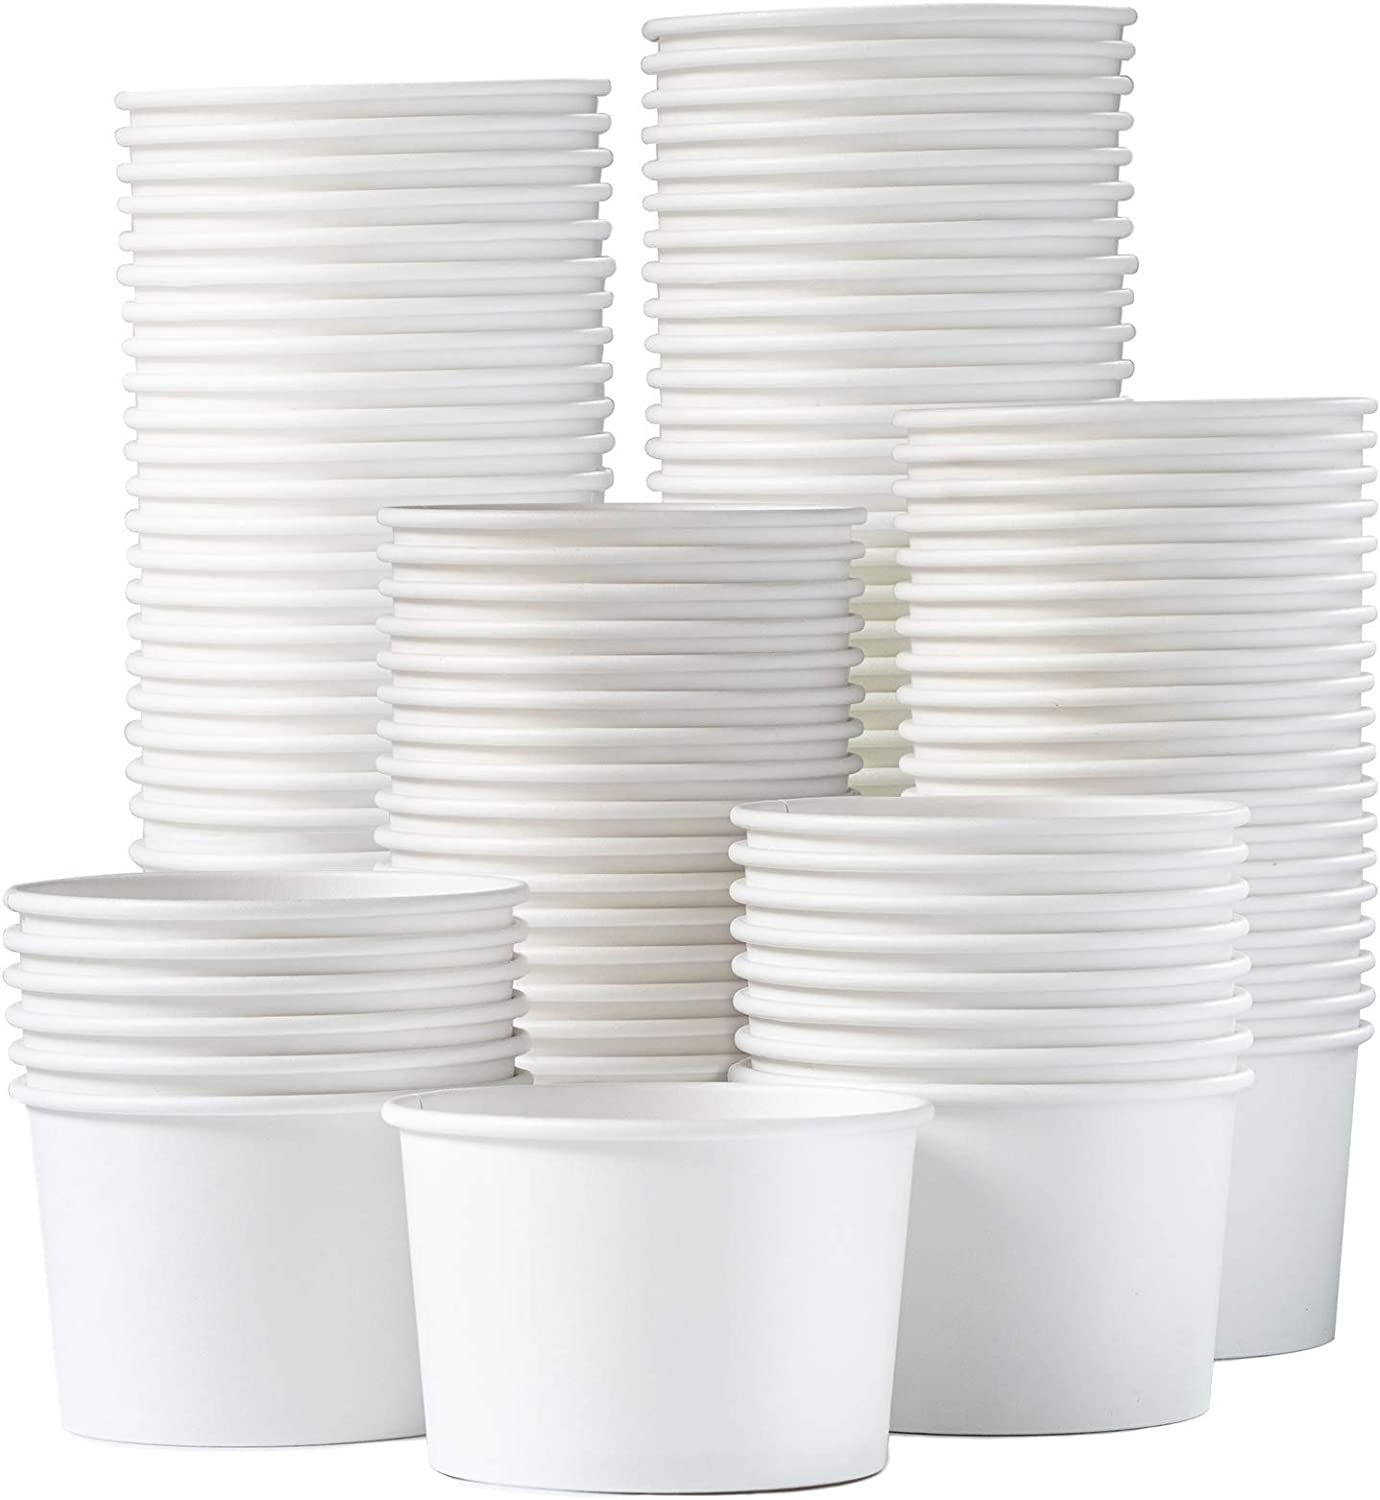 Paper Ice Cream Cups - 100-Count 9-Oz Disposable Dessert Bowls for Hot or Cold Food, 9-Ounce Party Supplies Treat Cups for Sundae, Frozen Yogurt, Soup, White